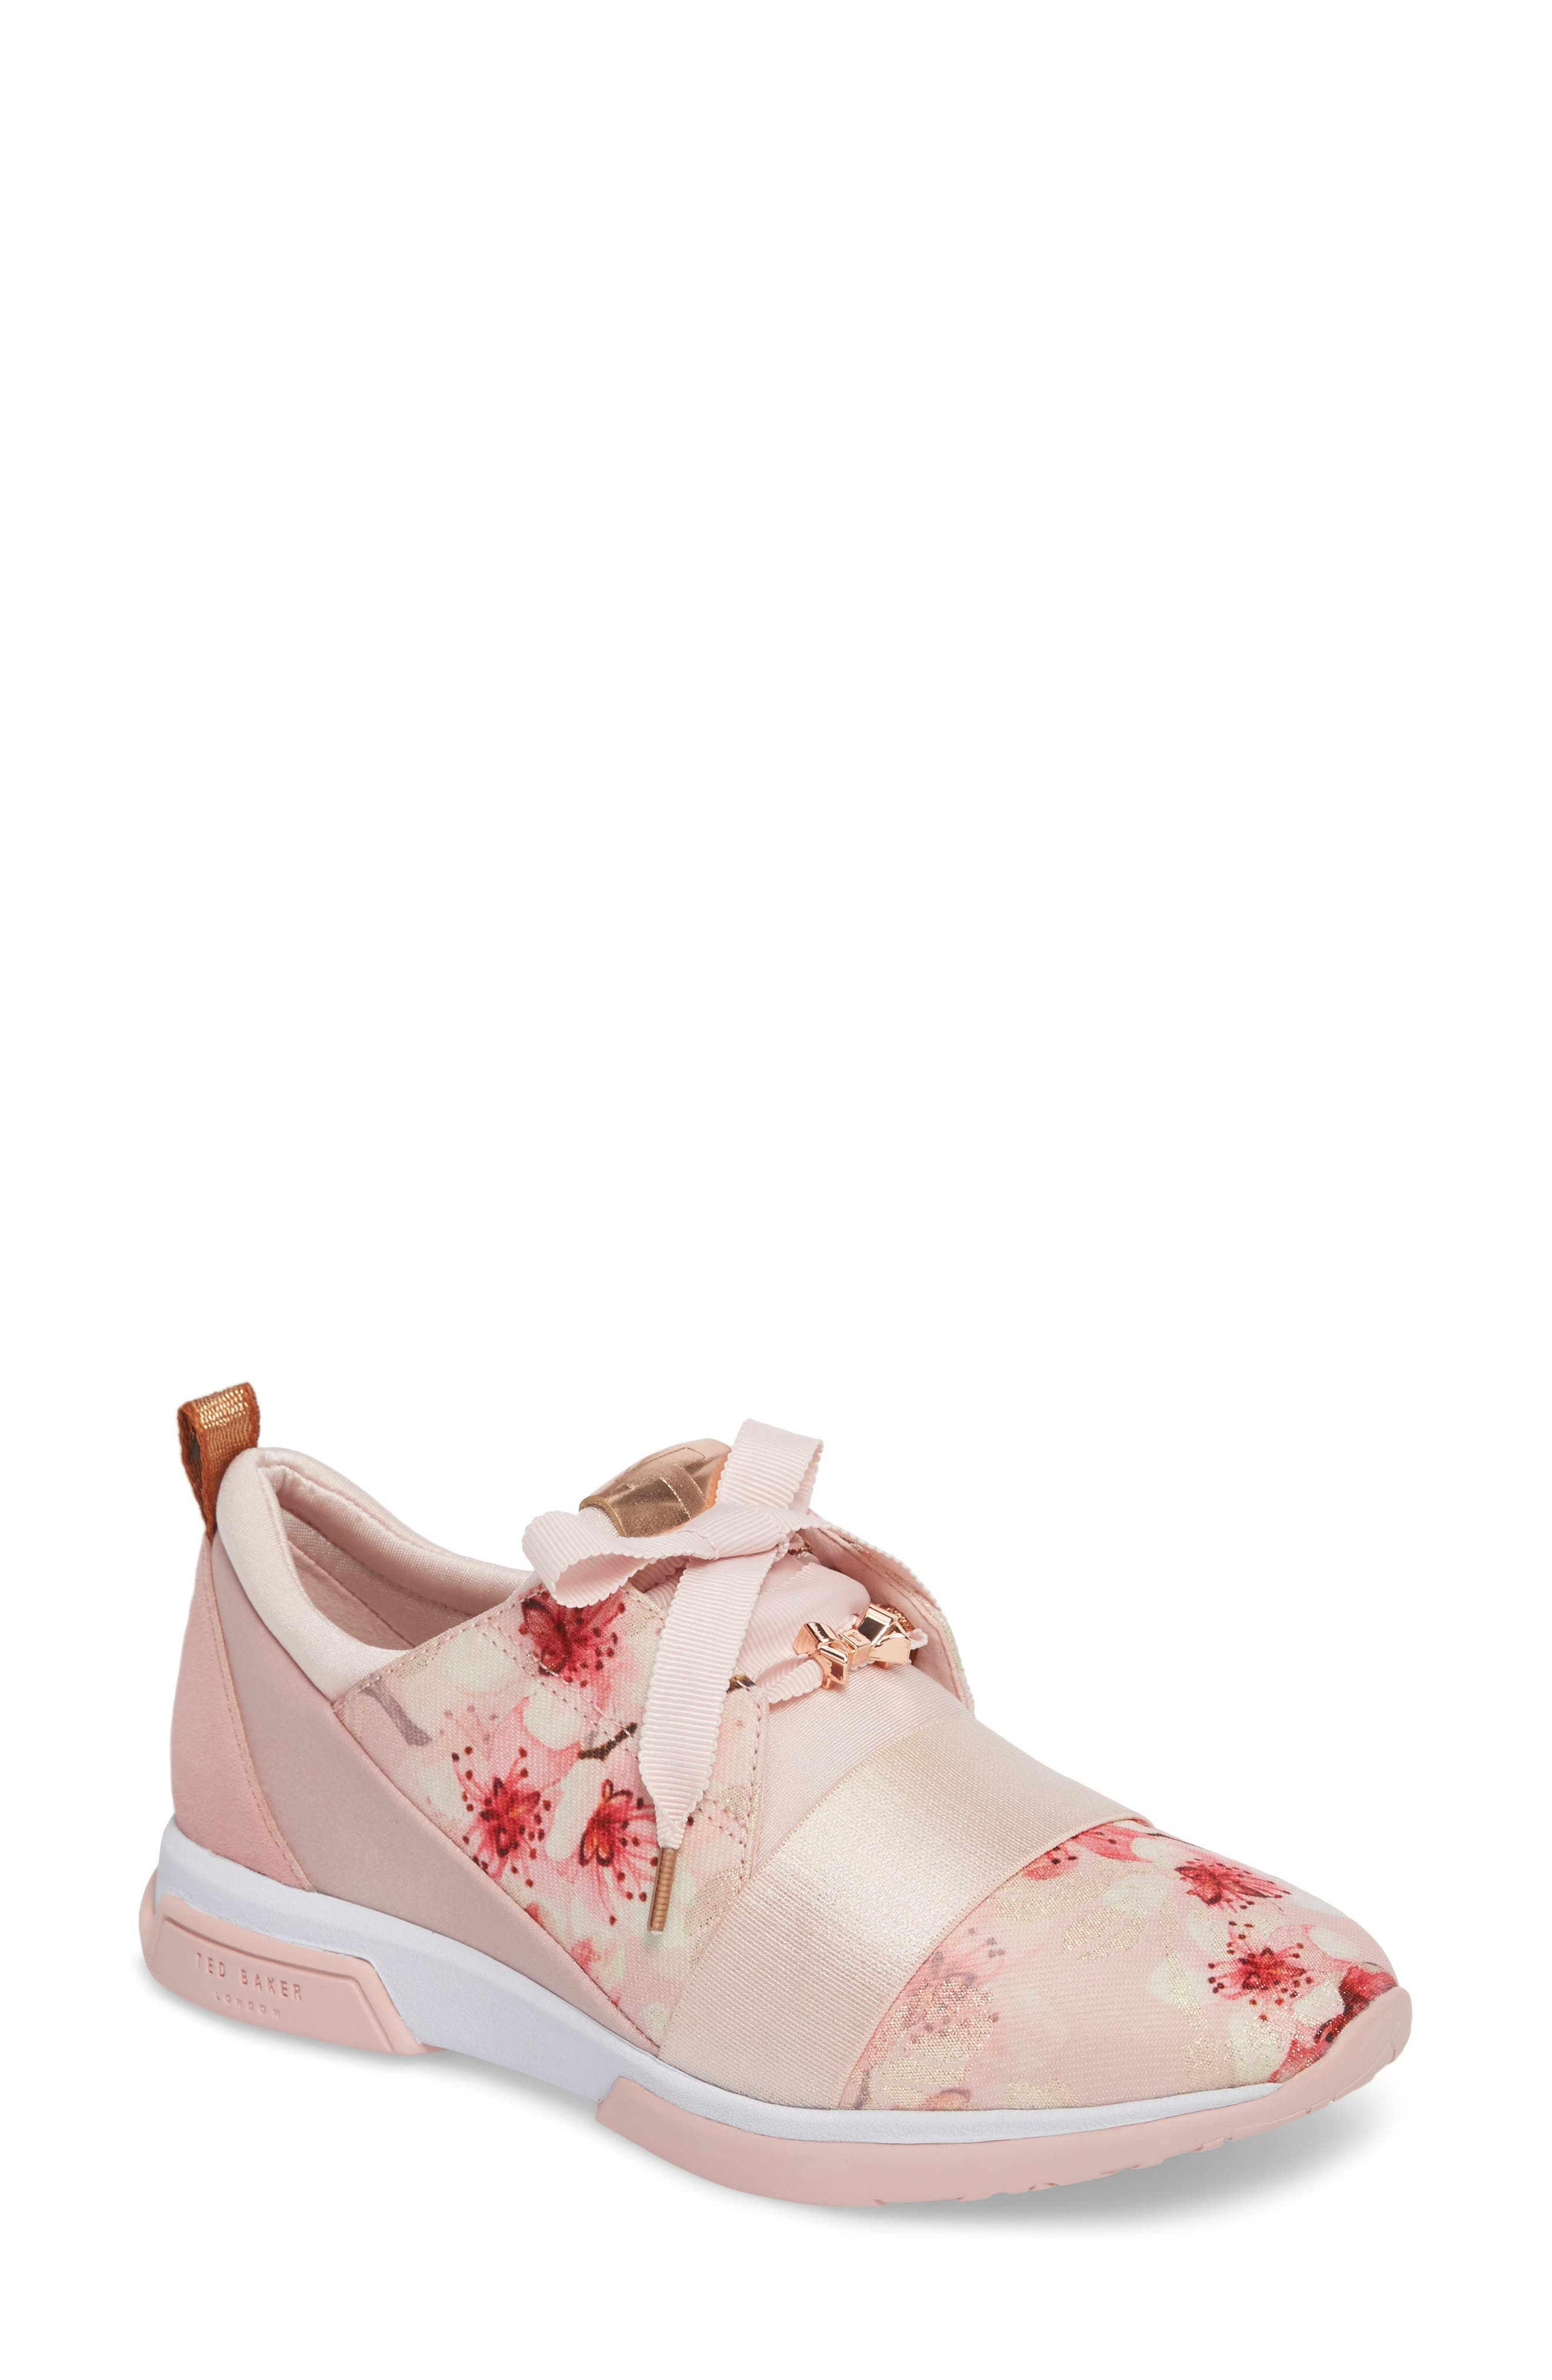 Alternate Image 1 Selected - Ted Baker London Cepap Sneaker (Women)